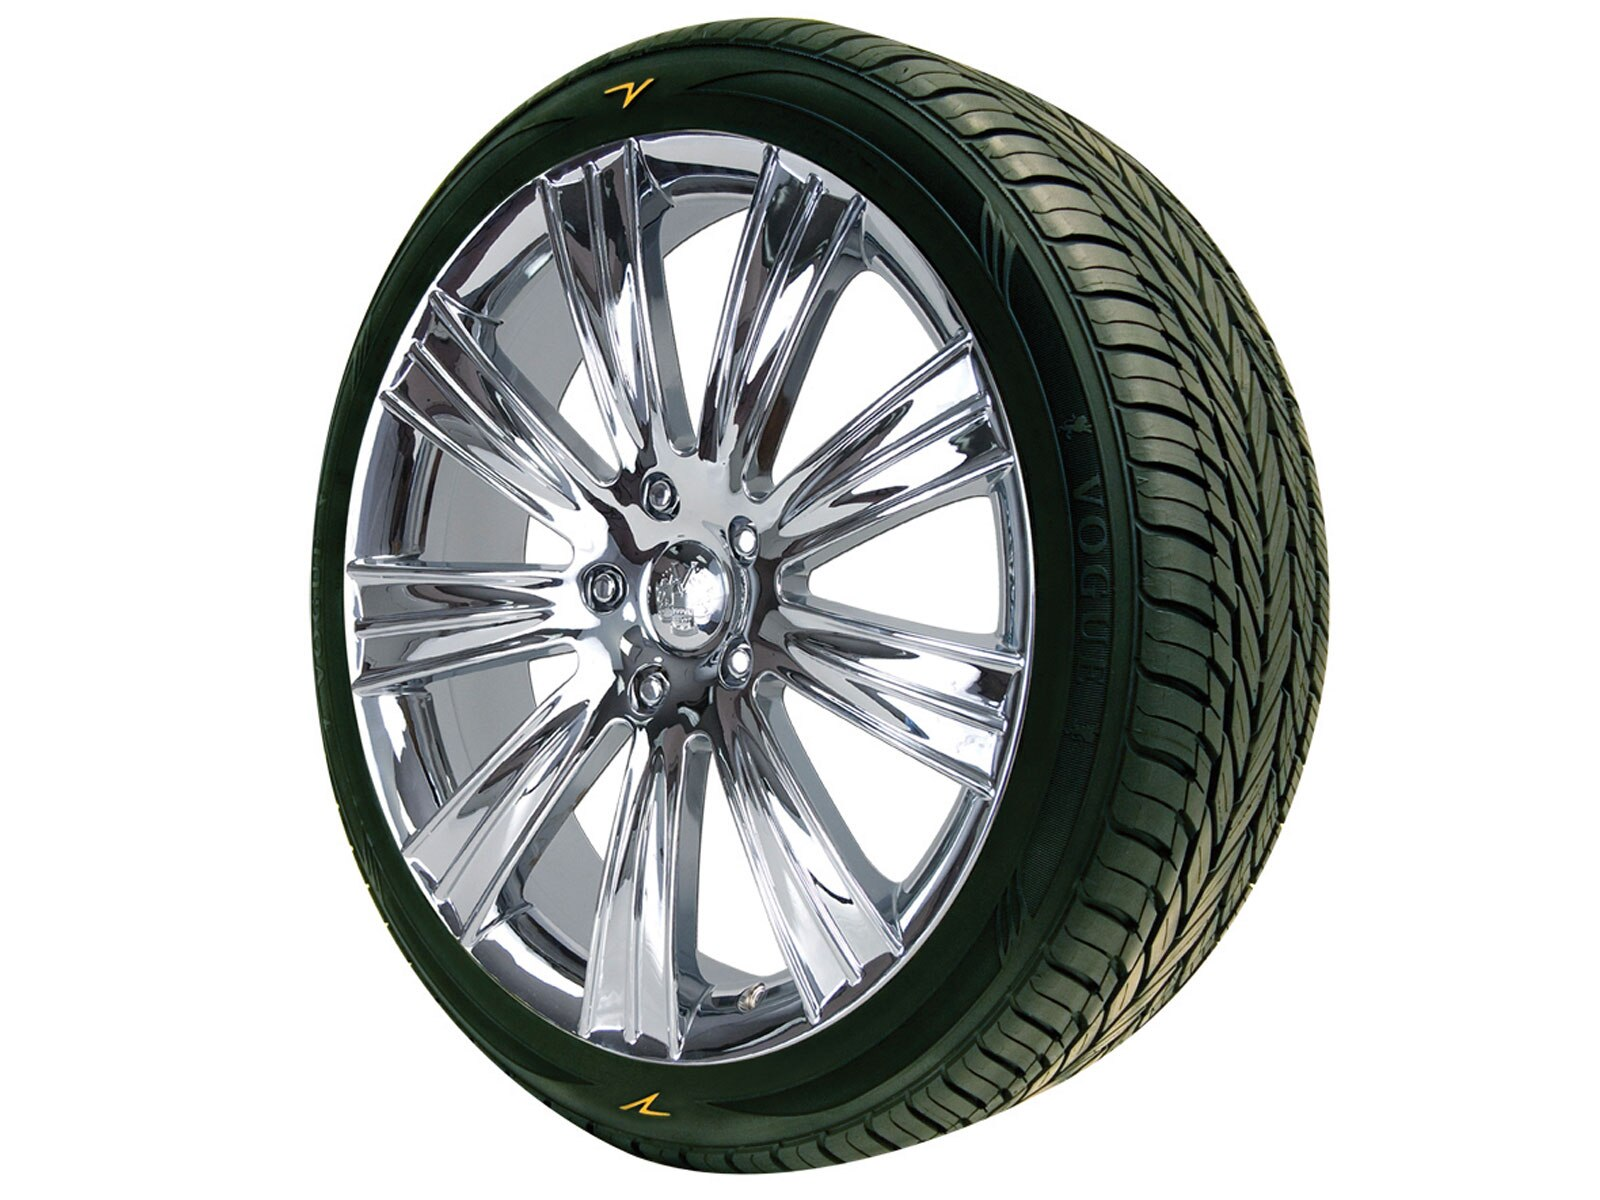 1102_lrmp_01_o-vogue_signature_v_tyre_and_lugz_footwear-vogue_tyre2